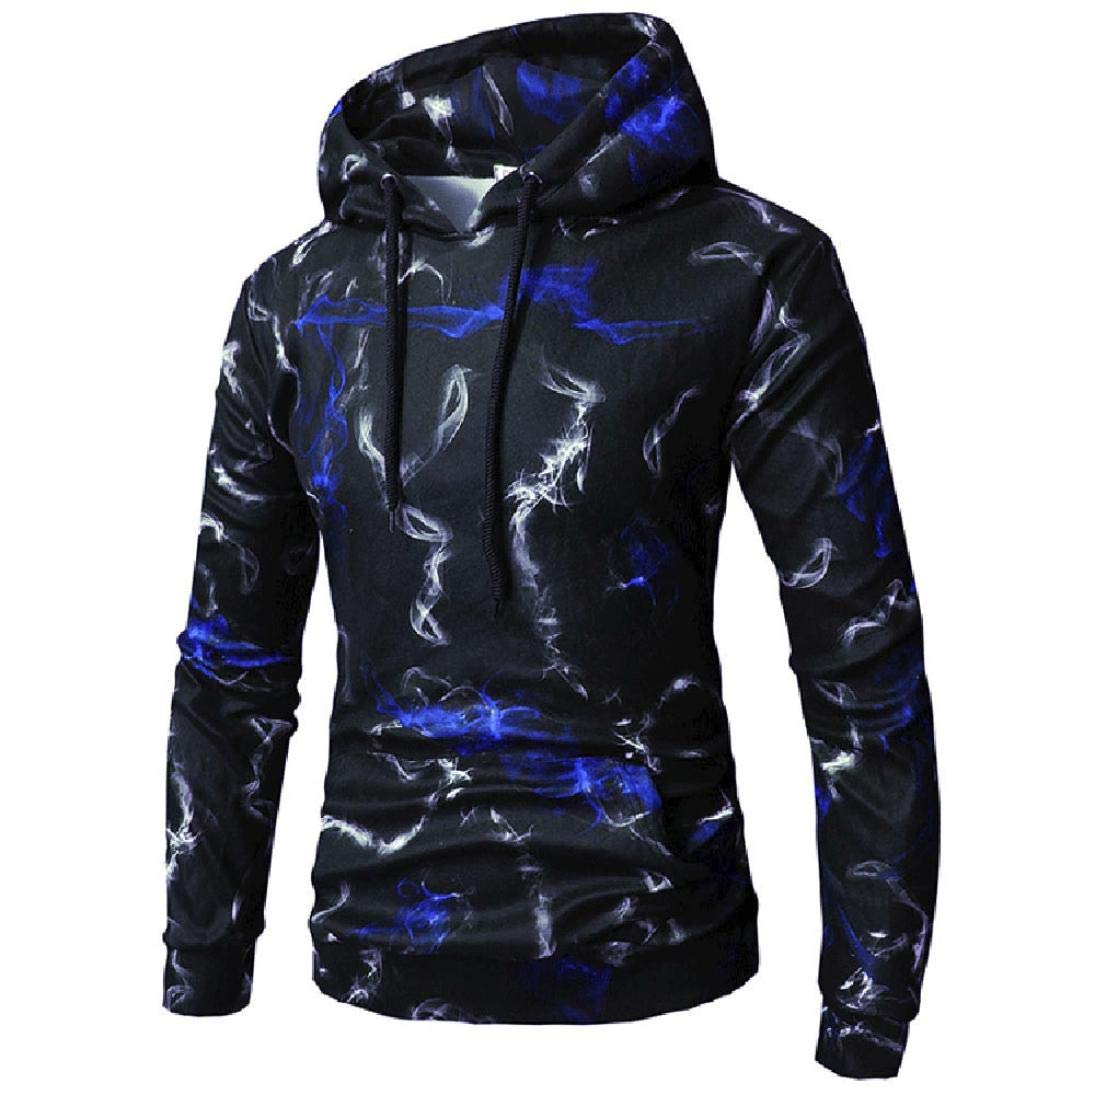 kaifongfu Sweater Top for Men with Digital Print Outwear Hooded T-Shirt Mens TeeBlueXL